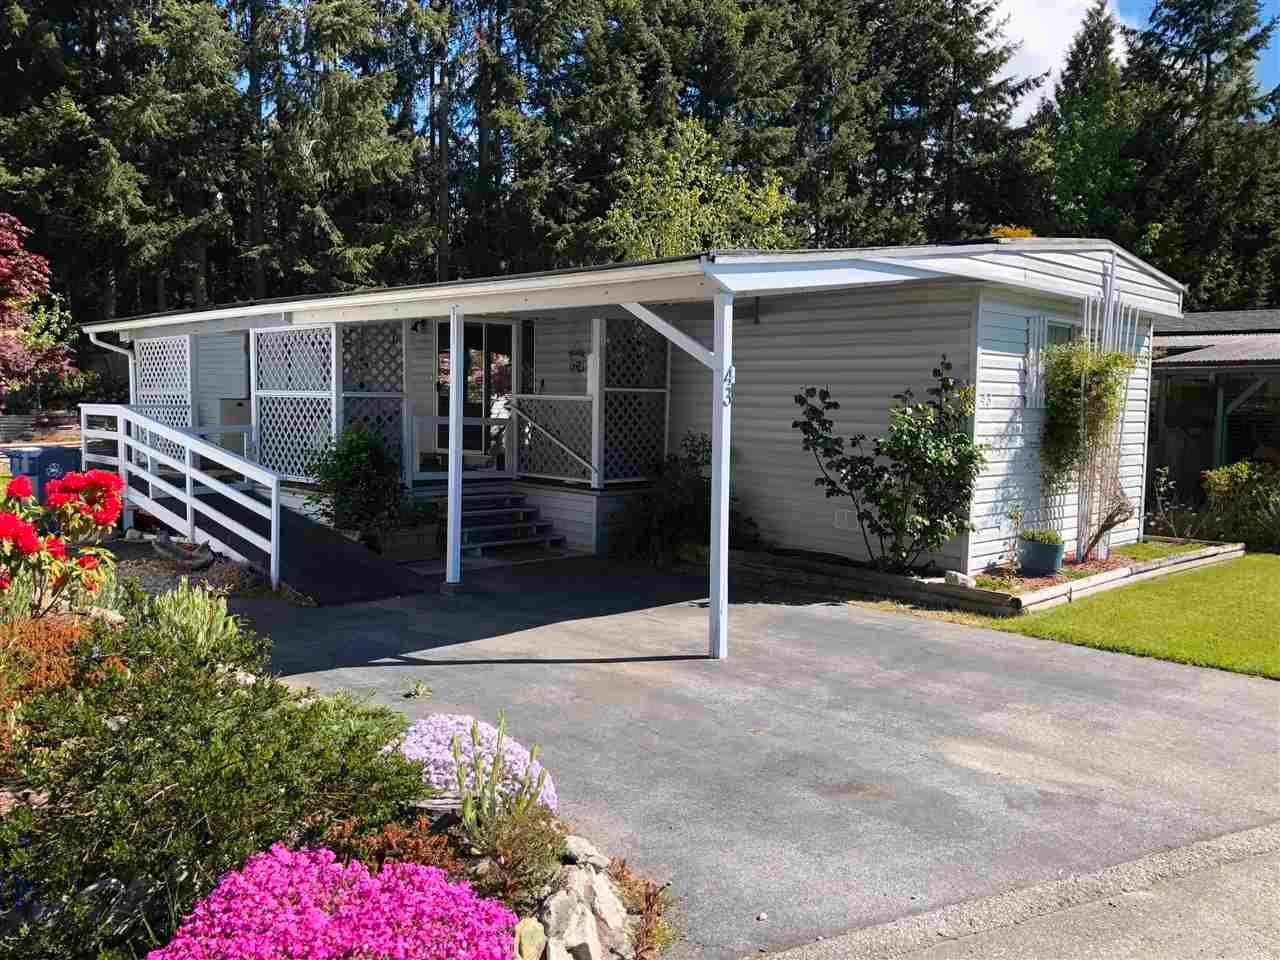 """Main Photo: 43 4116 BROWNING Road in Sechelt: Sechelt District Manufactured Home for sale in """"ROCKLAND WYND MOBILE HOME PARK"""" (Sunshine Coast)  : MLS®# R2580958"""